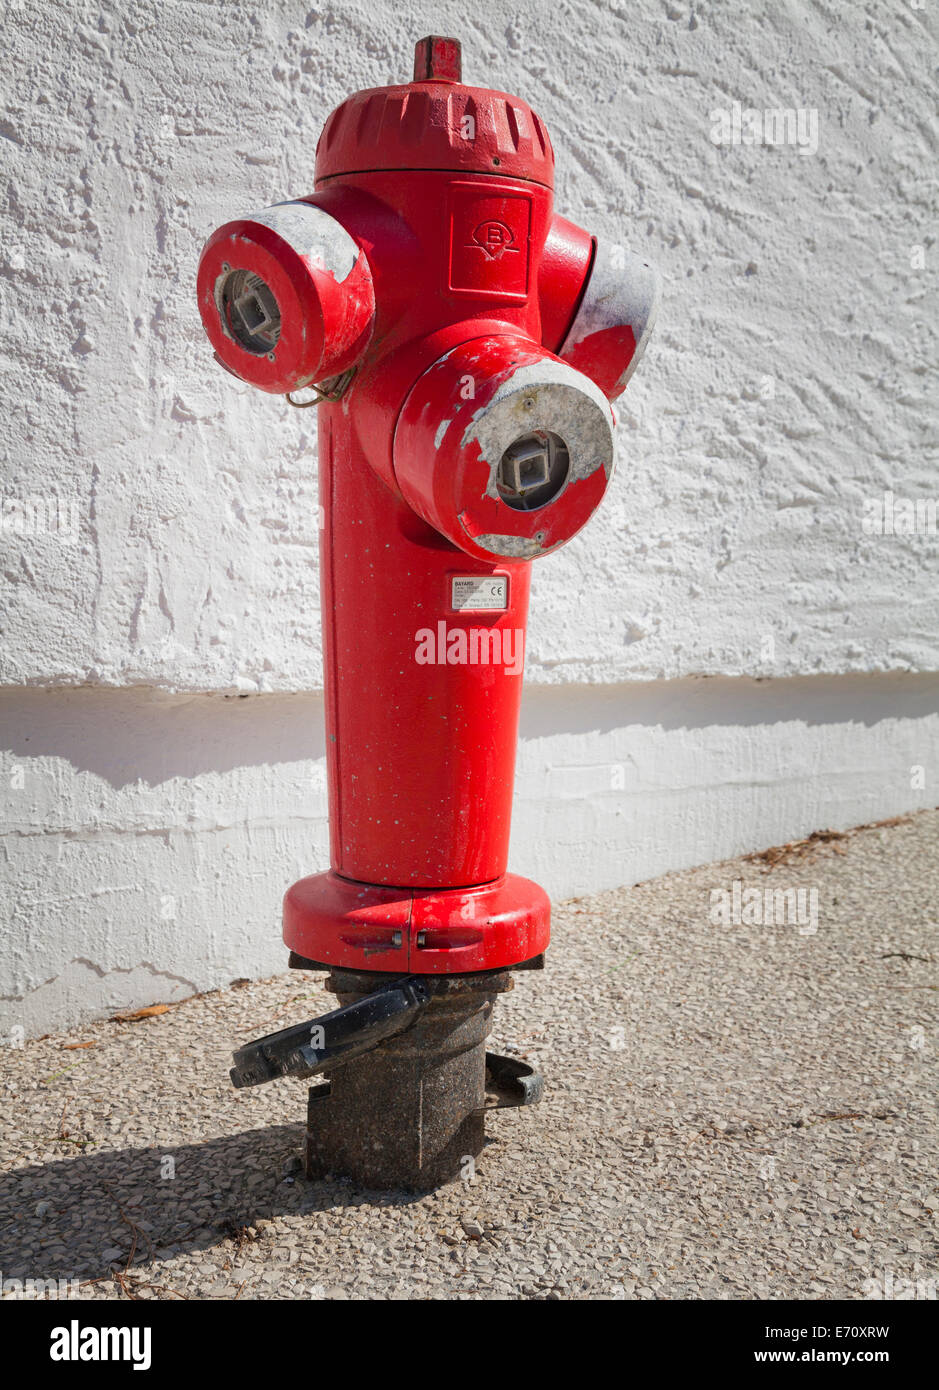 Red French fire Hydrant - Stock Image